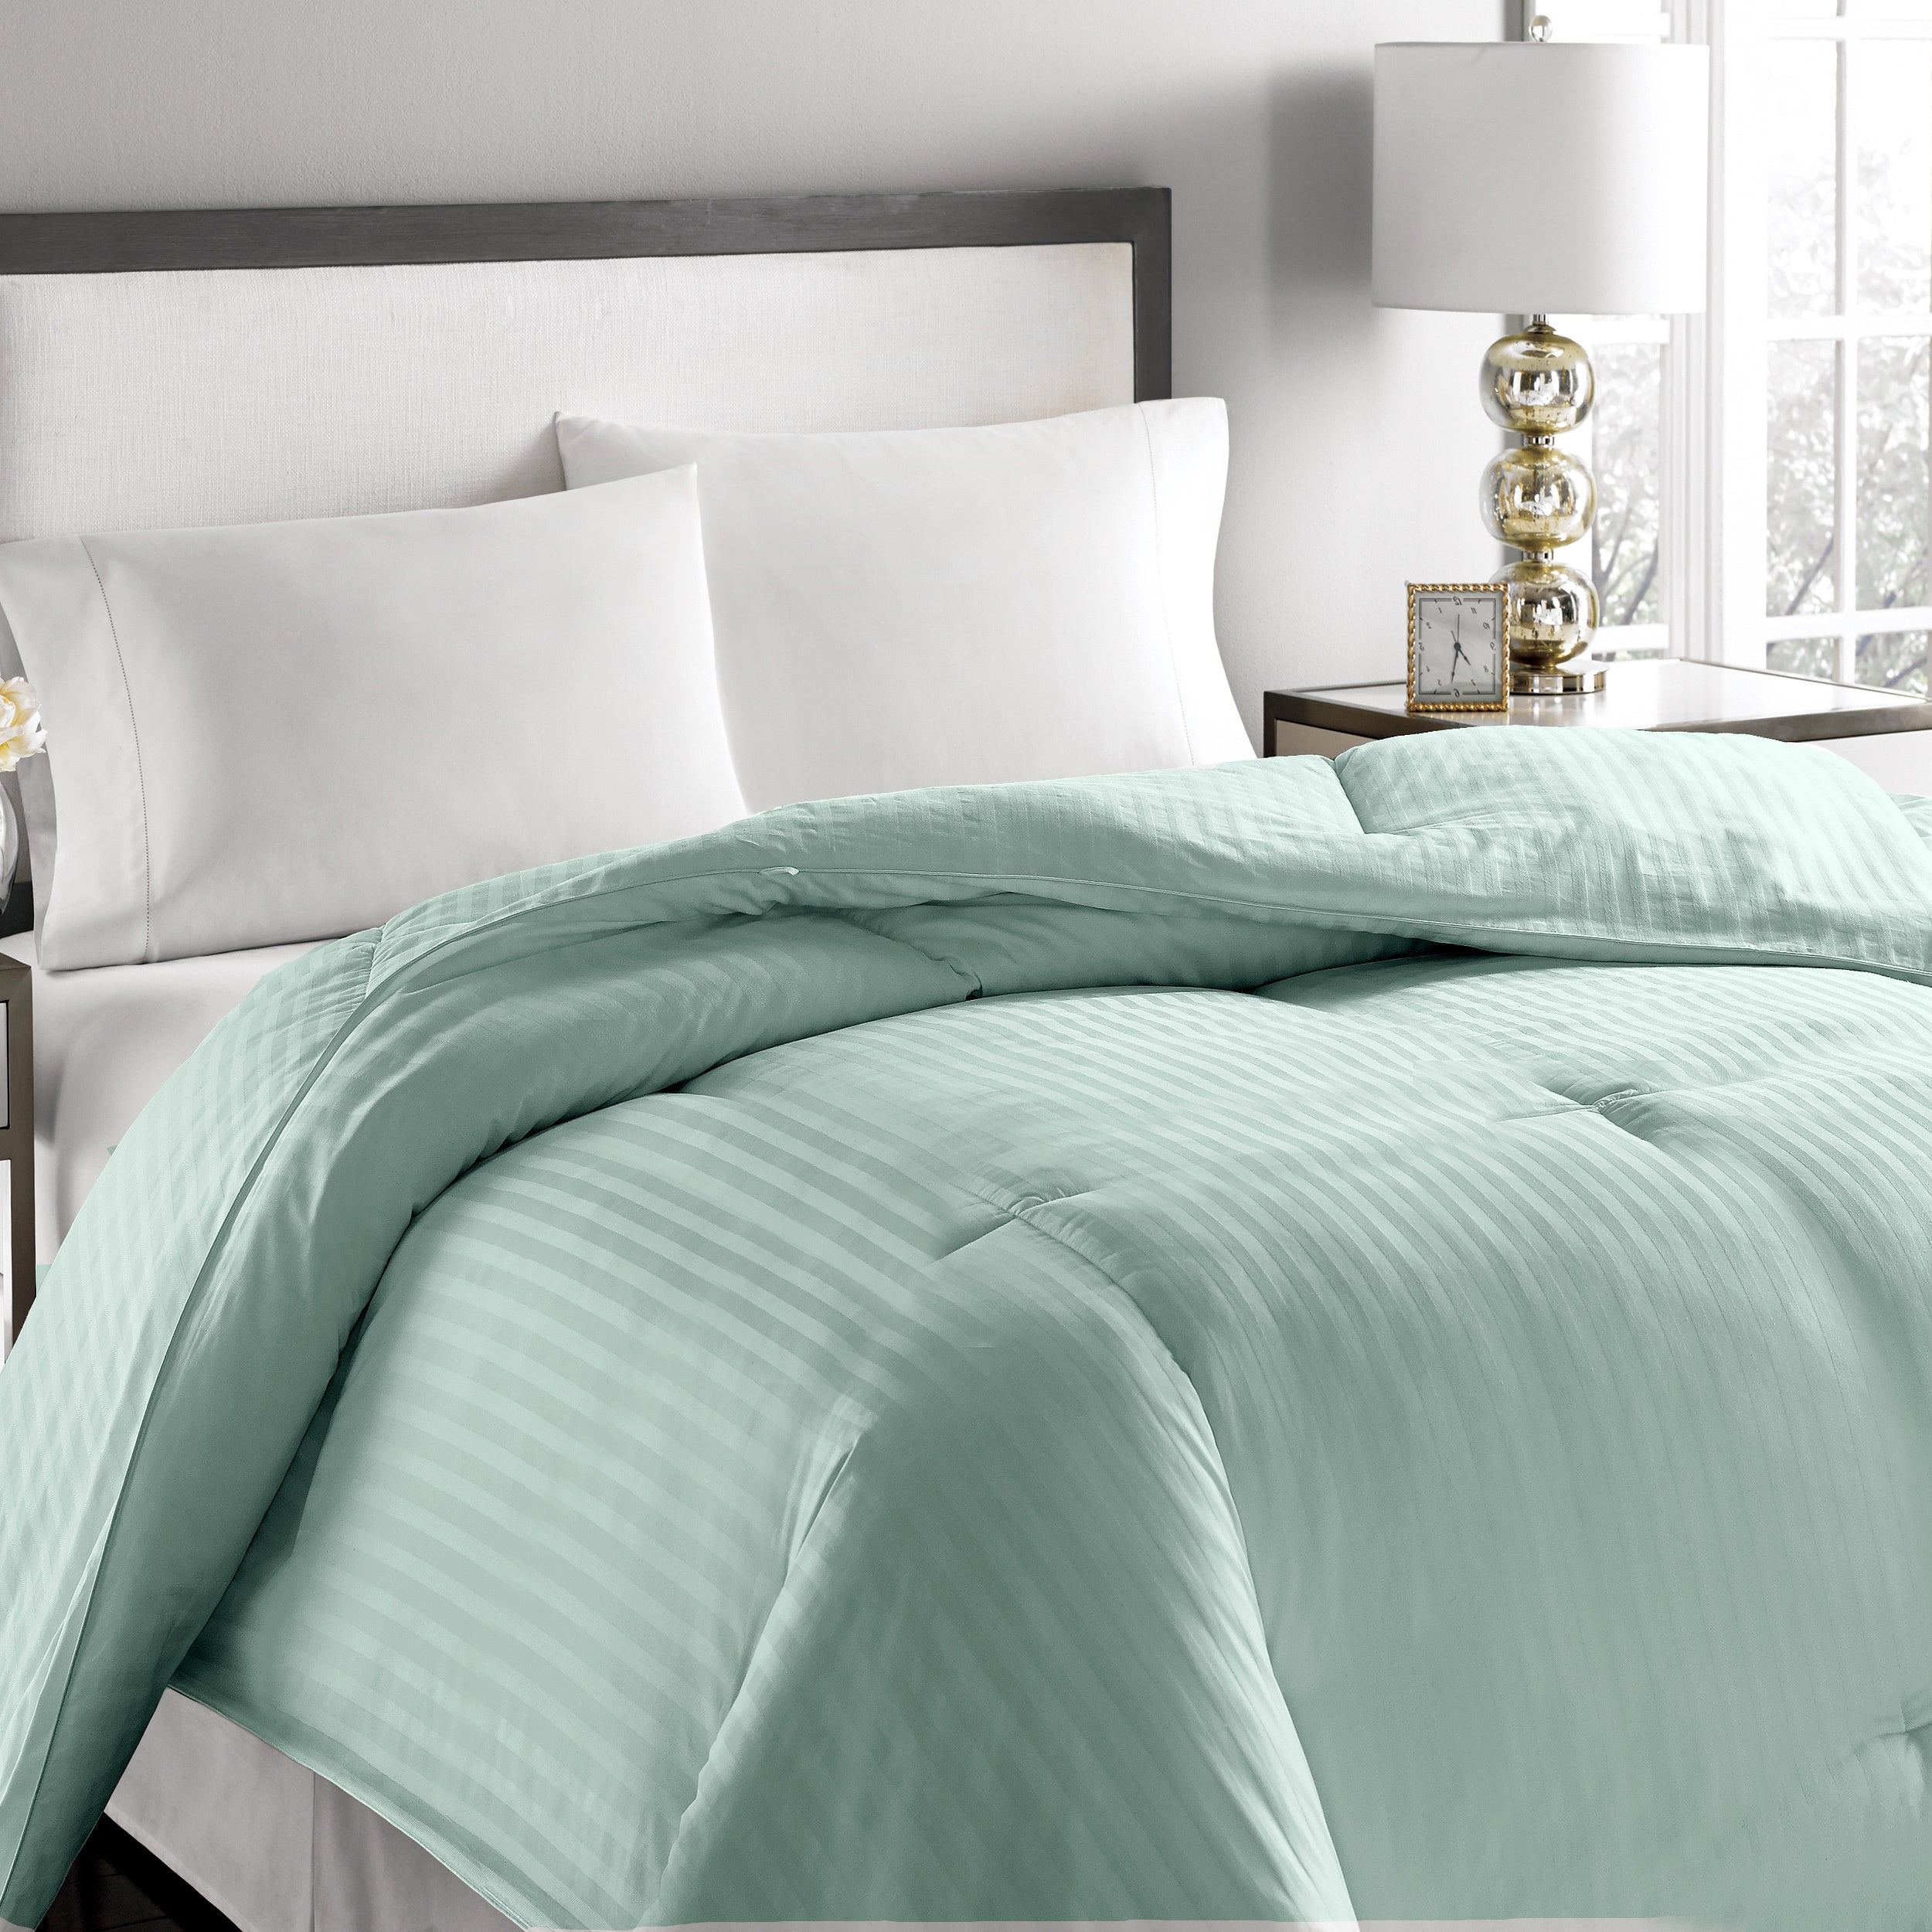 today down batiste goose overstock power thread cotton luxury bath oversized warm comforter free fill hungarian count bedding white bauer eddie product baffle shipping box